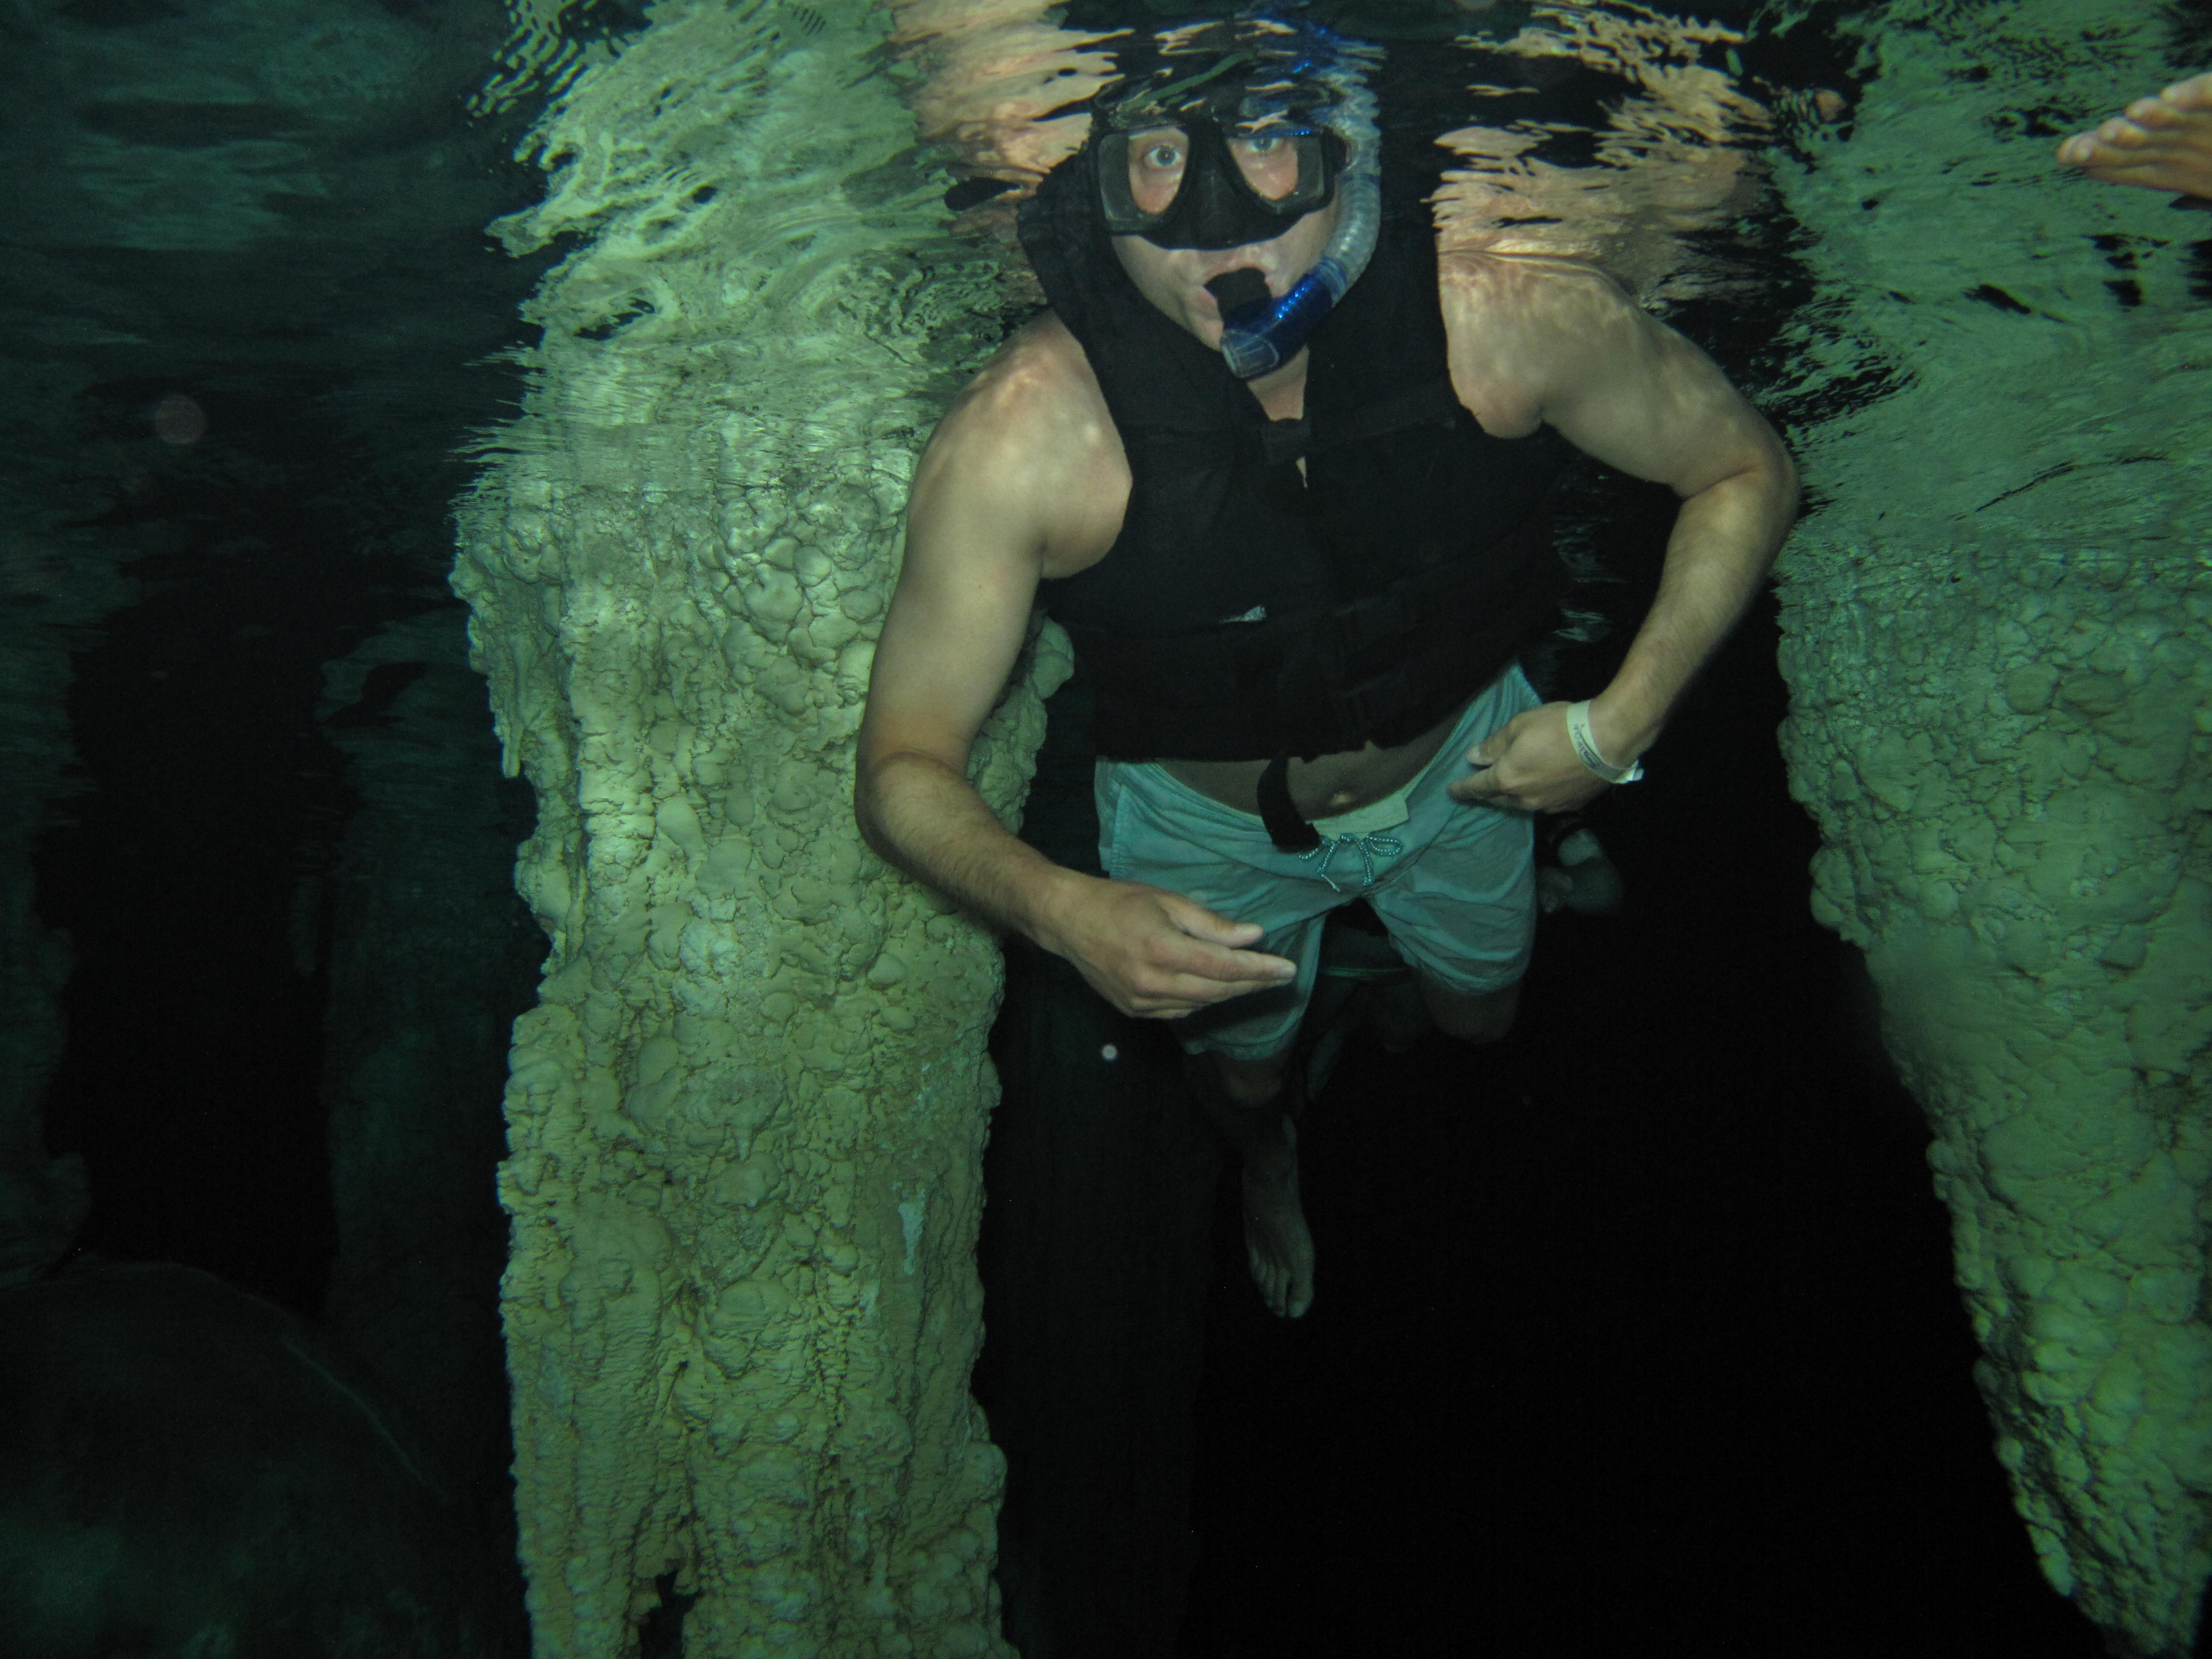 Scuba Swimming in Caves of Mexico